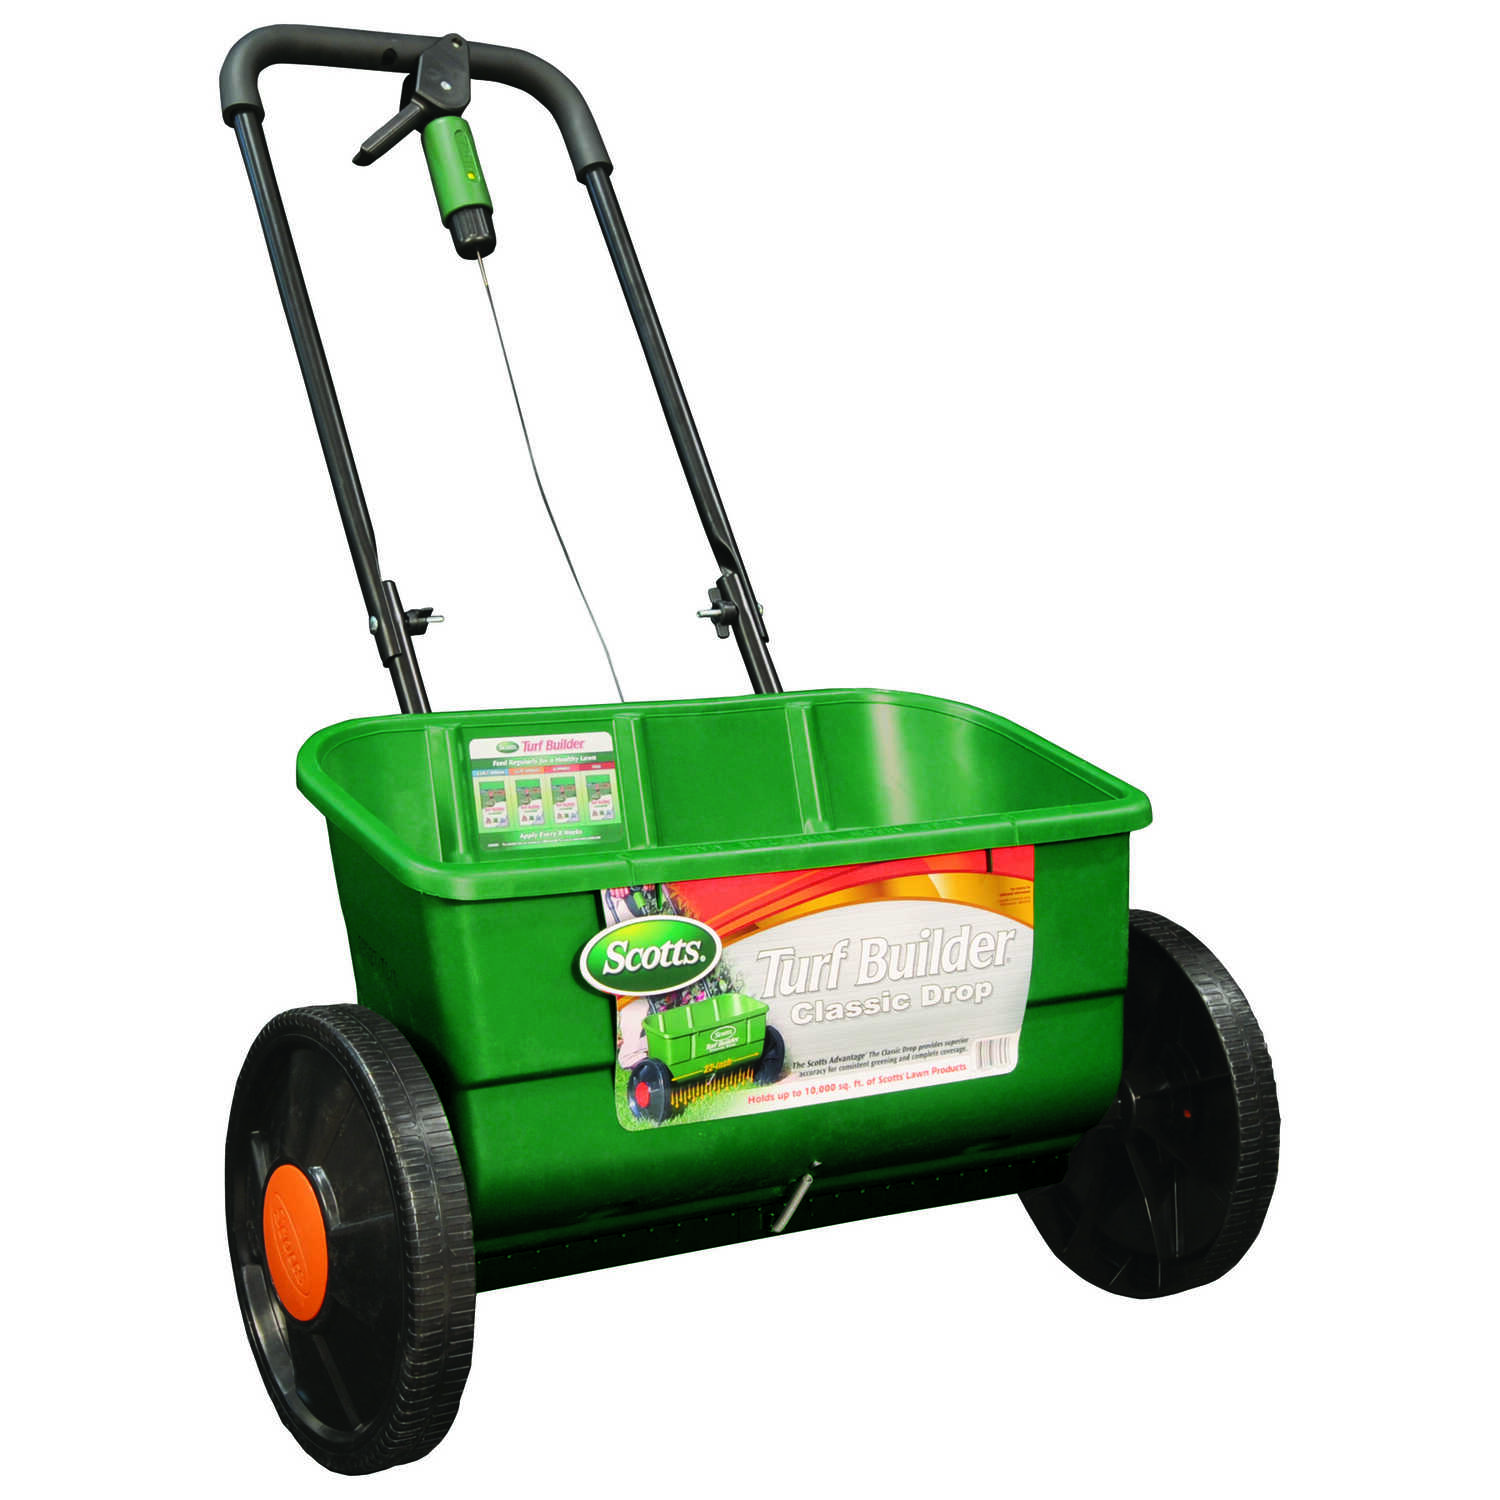 Scotts  Turf Builder  Push  Spreader  For Fertilizer